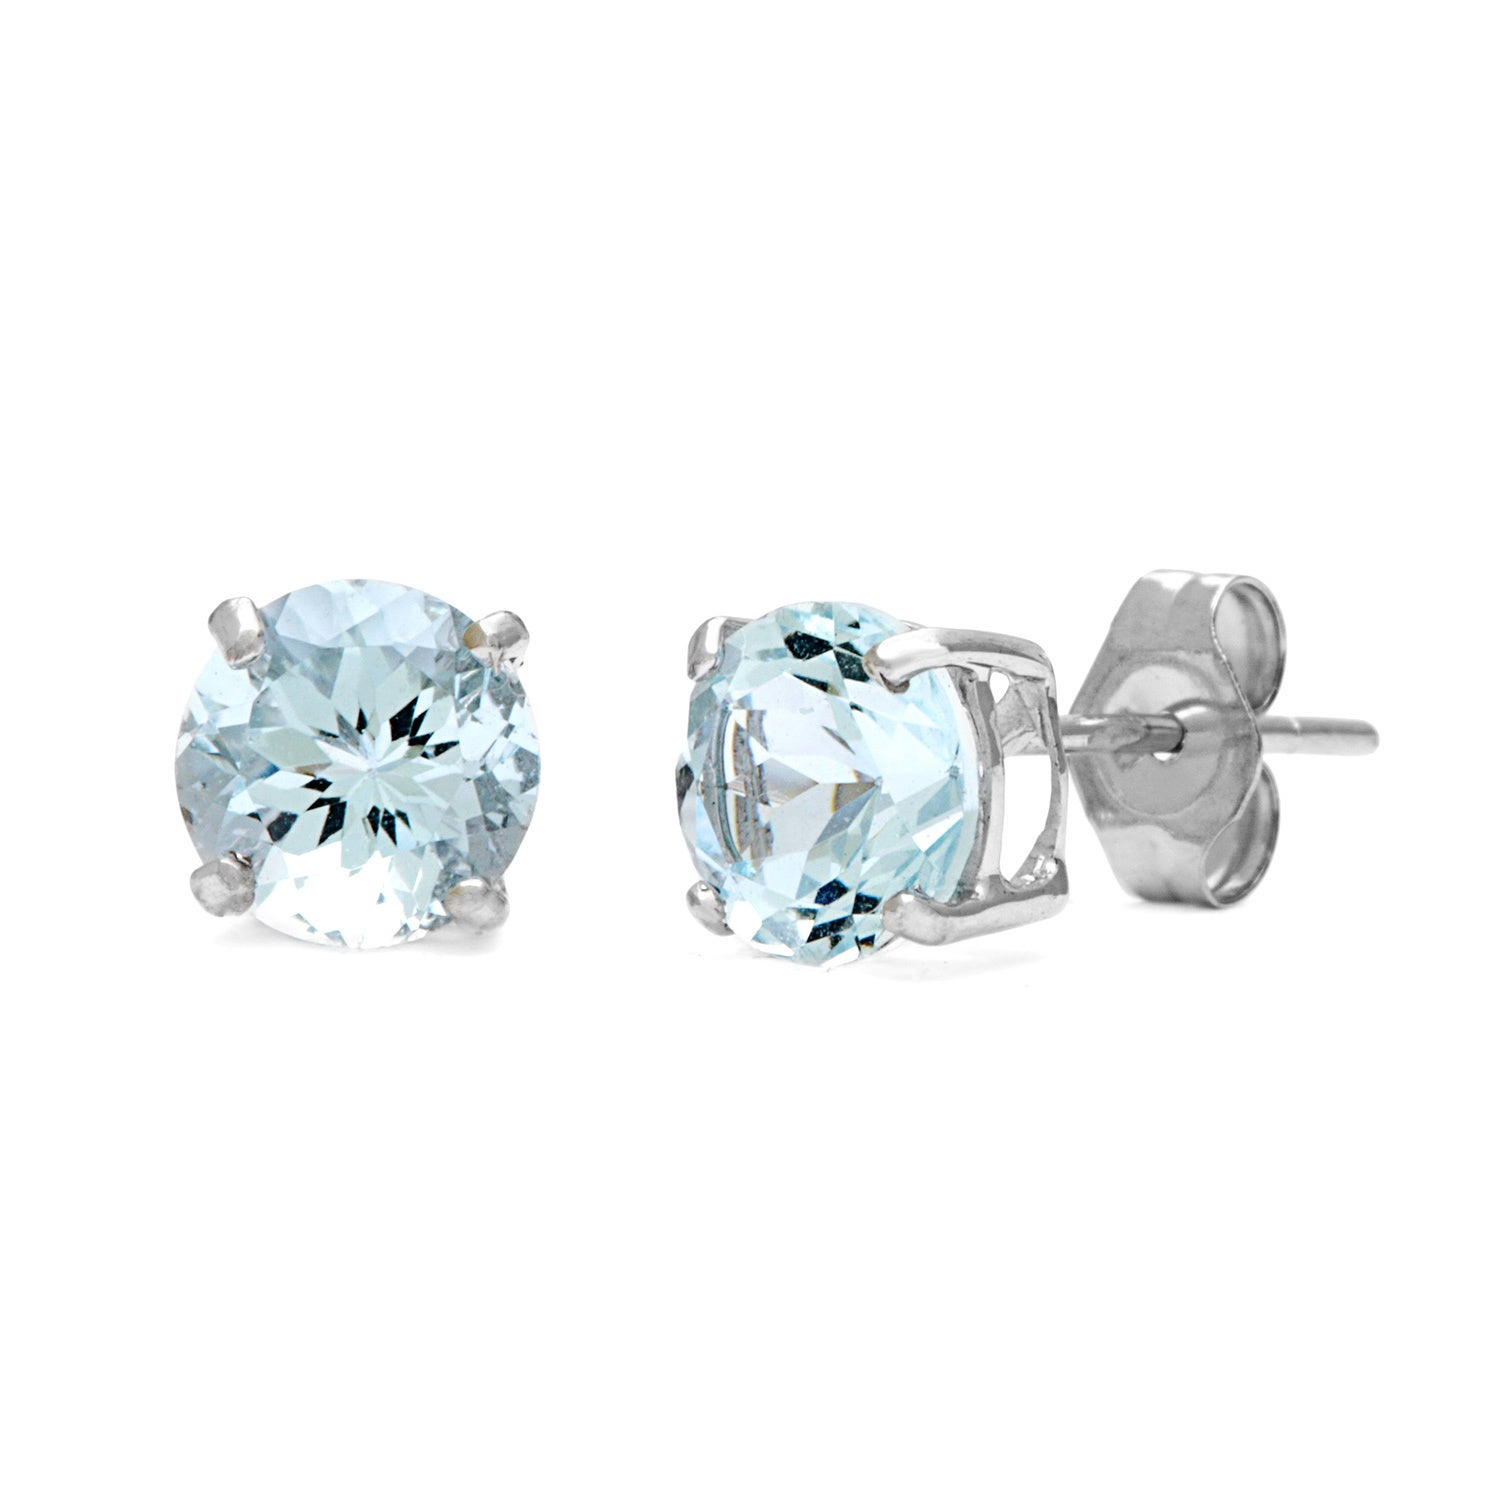 Kabella 14k White Gold Round Aquamarine Earrings Free Shipping Today 10823313